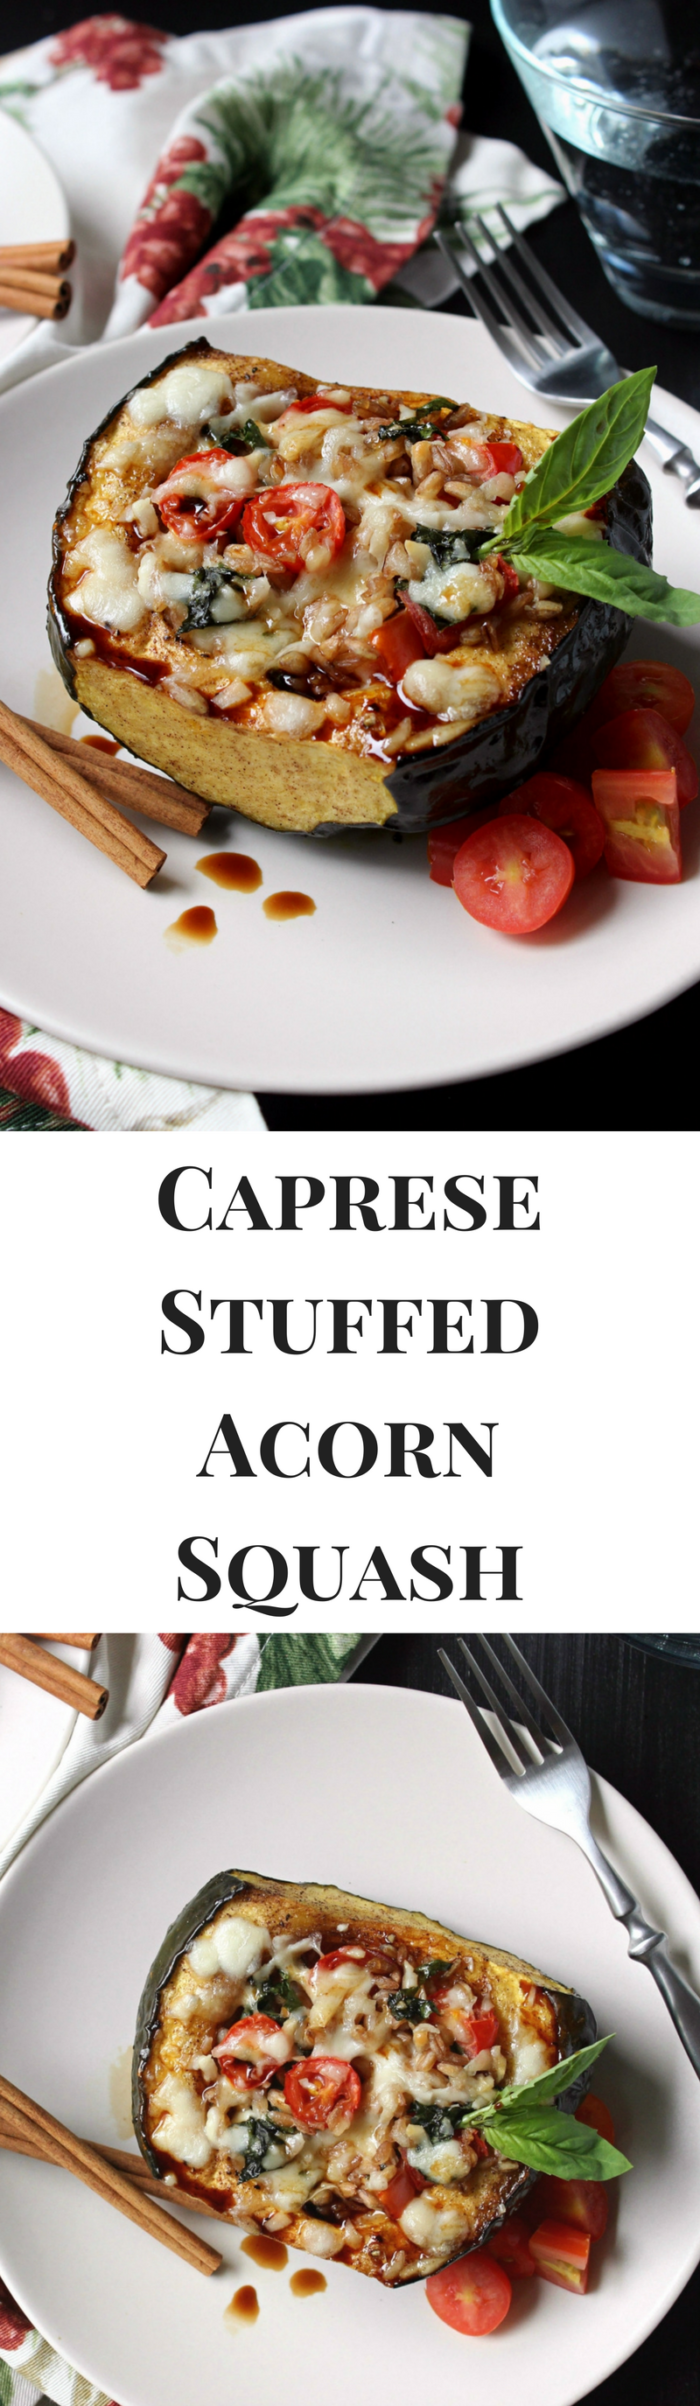 Dinner for Two: Caprese Stuffed Acorn Squash